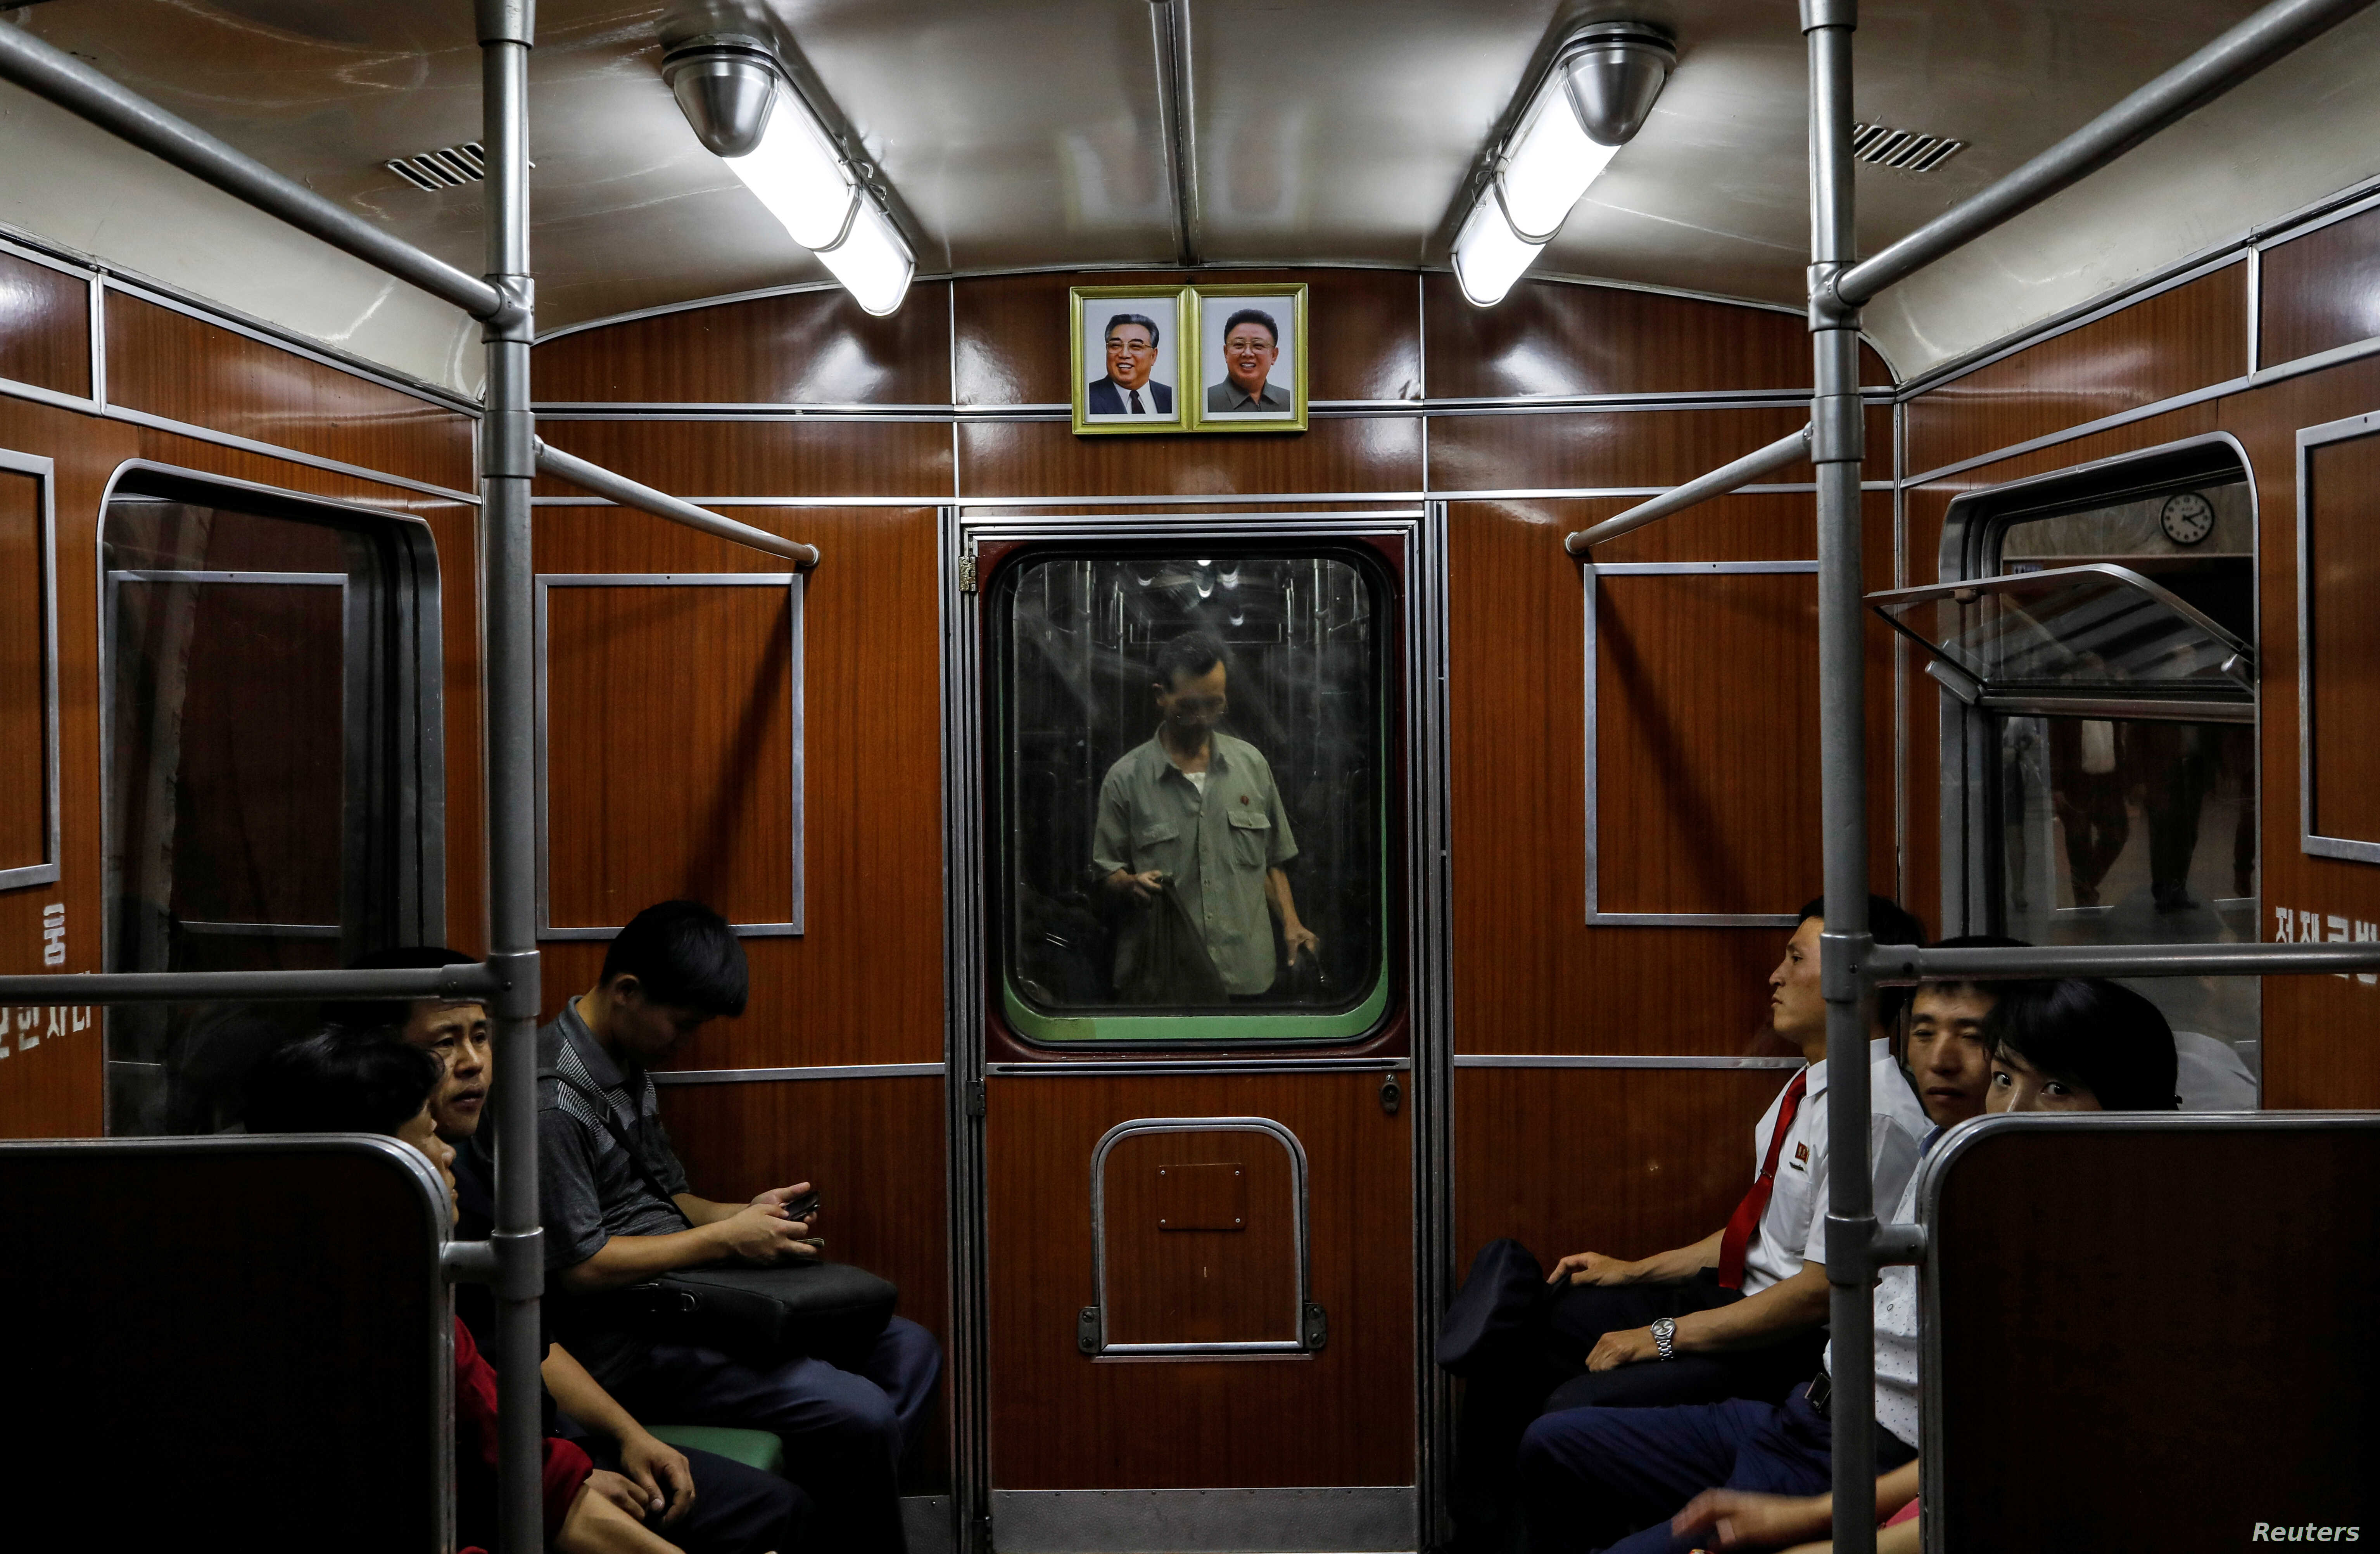 FILE - Portraits of late North Korean leaders Kim Il Sung and Kim Jong Il are seen on a train as it leaves a subway station in Pyongyang, North Korea, Sept. 11, 2018.